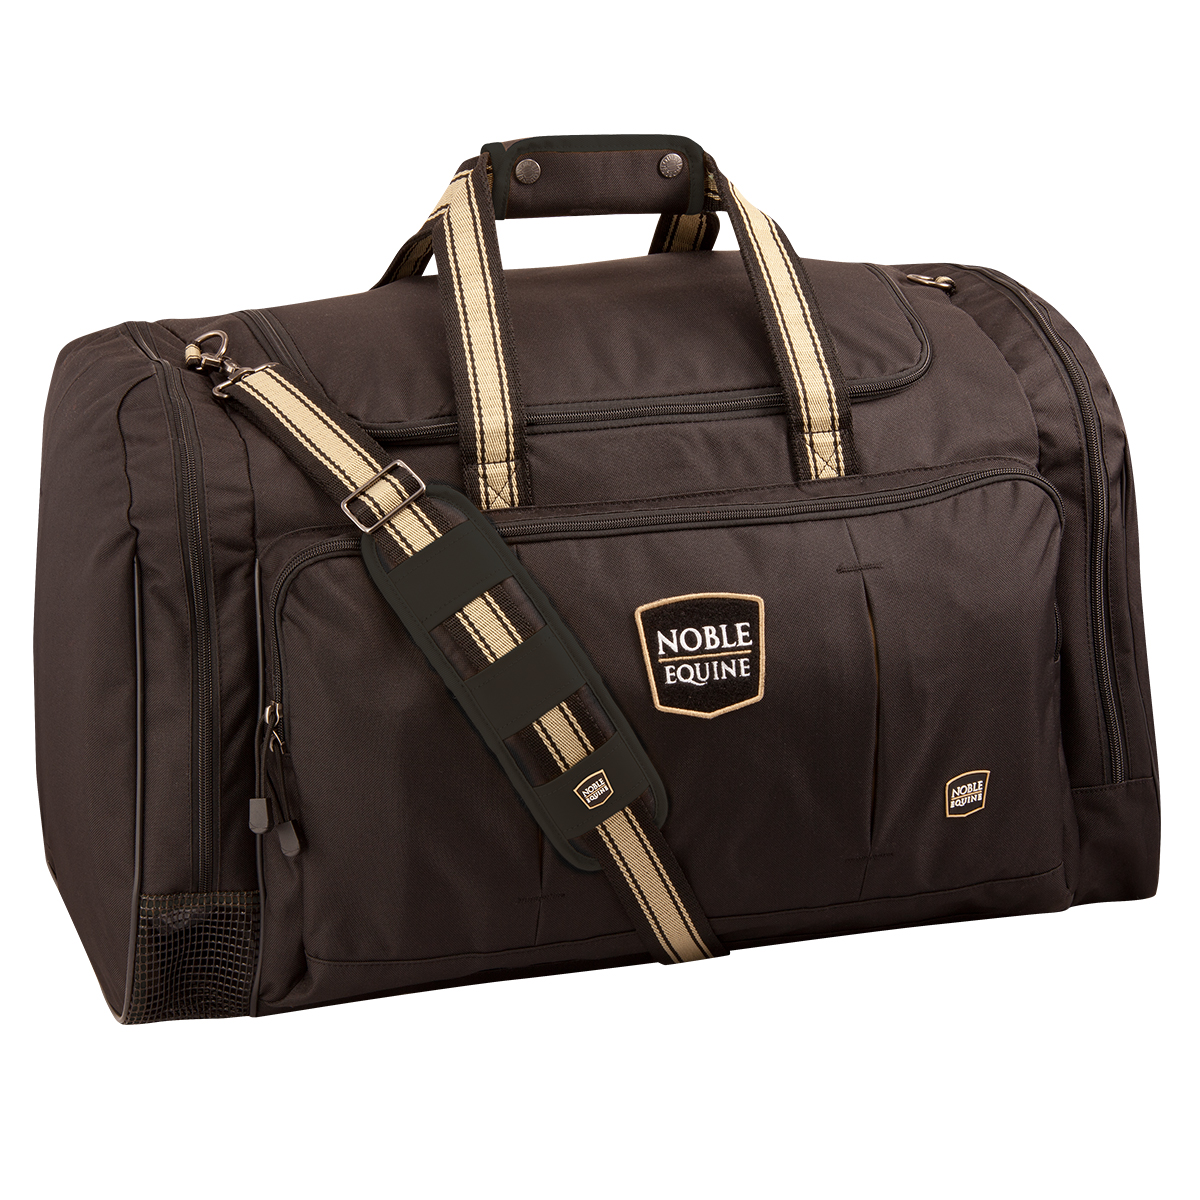 Noble Equine 6.2 Hands Duffle